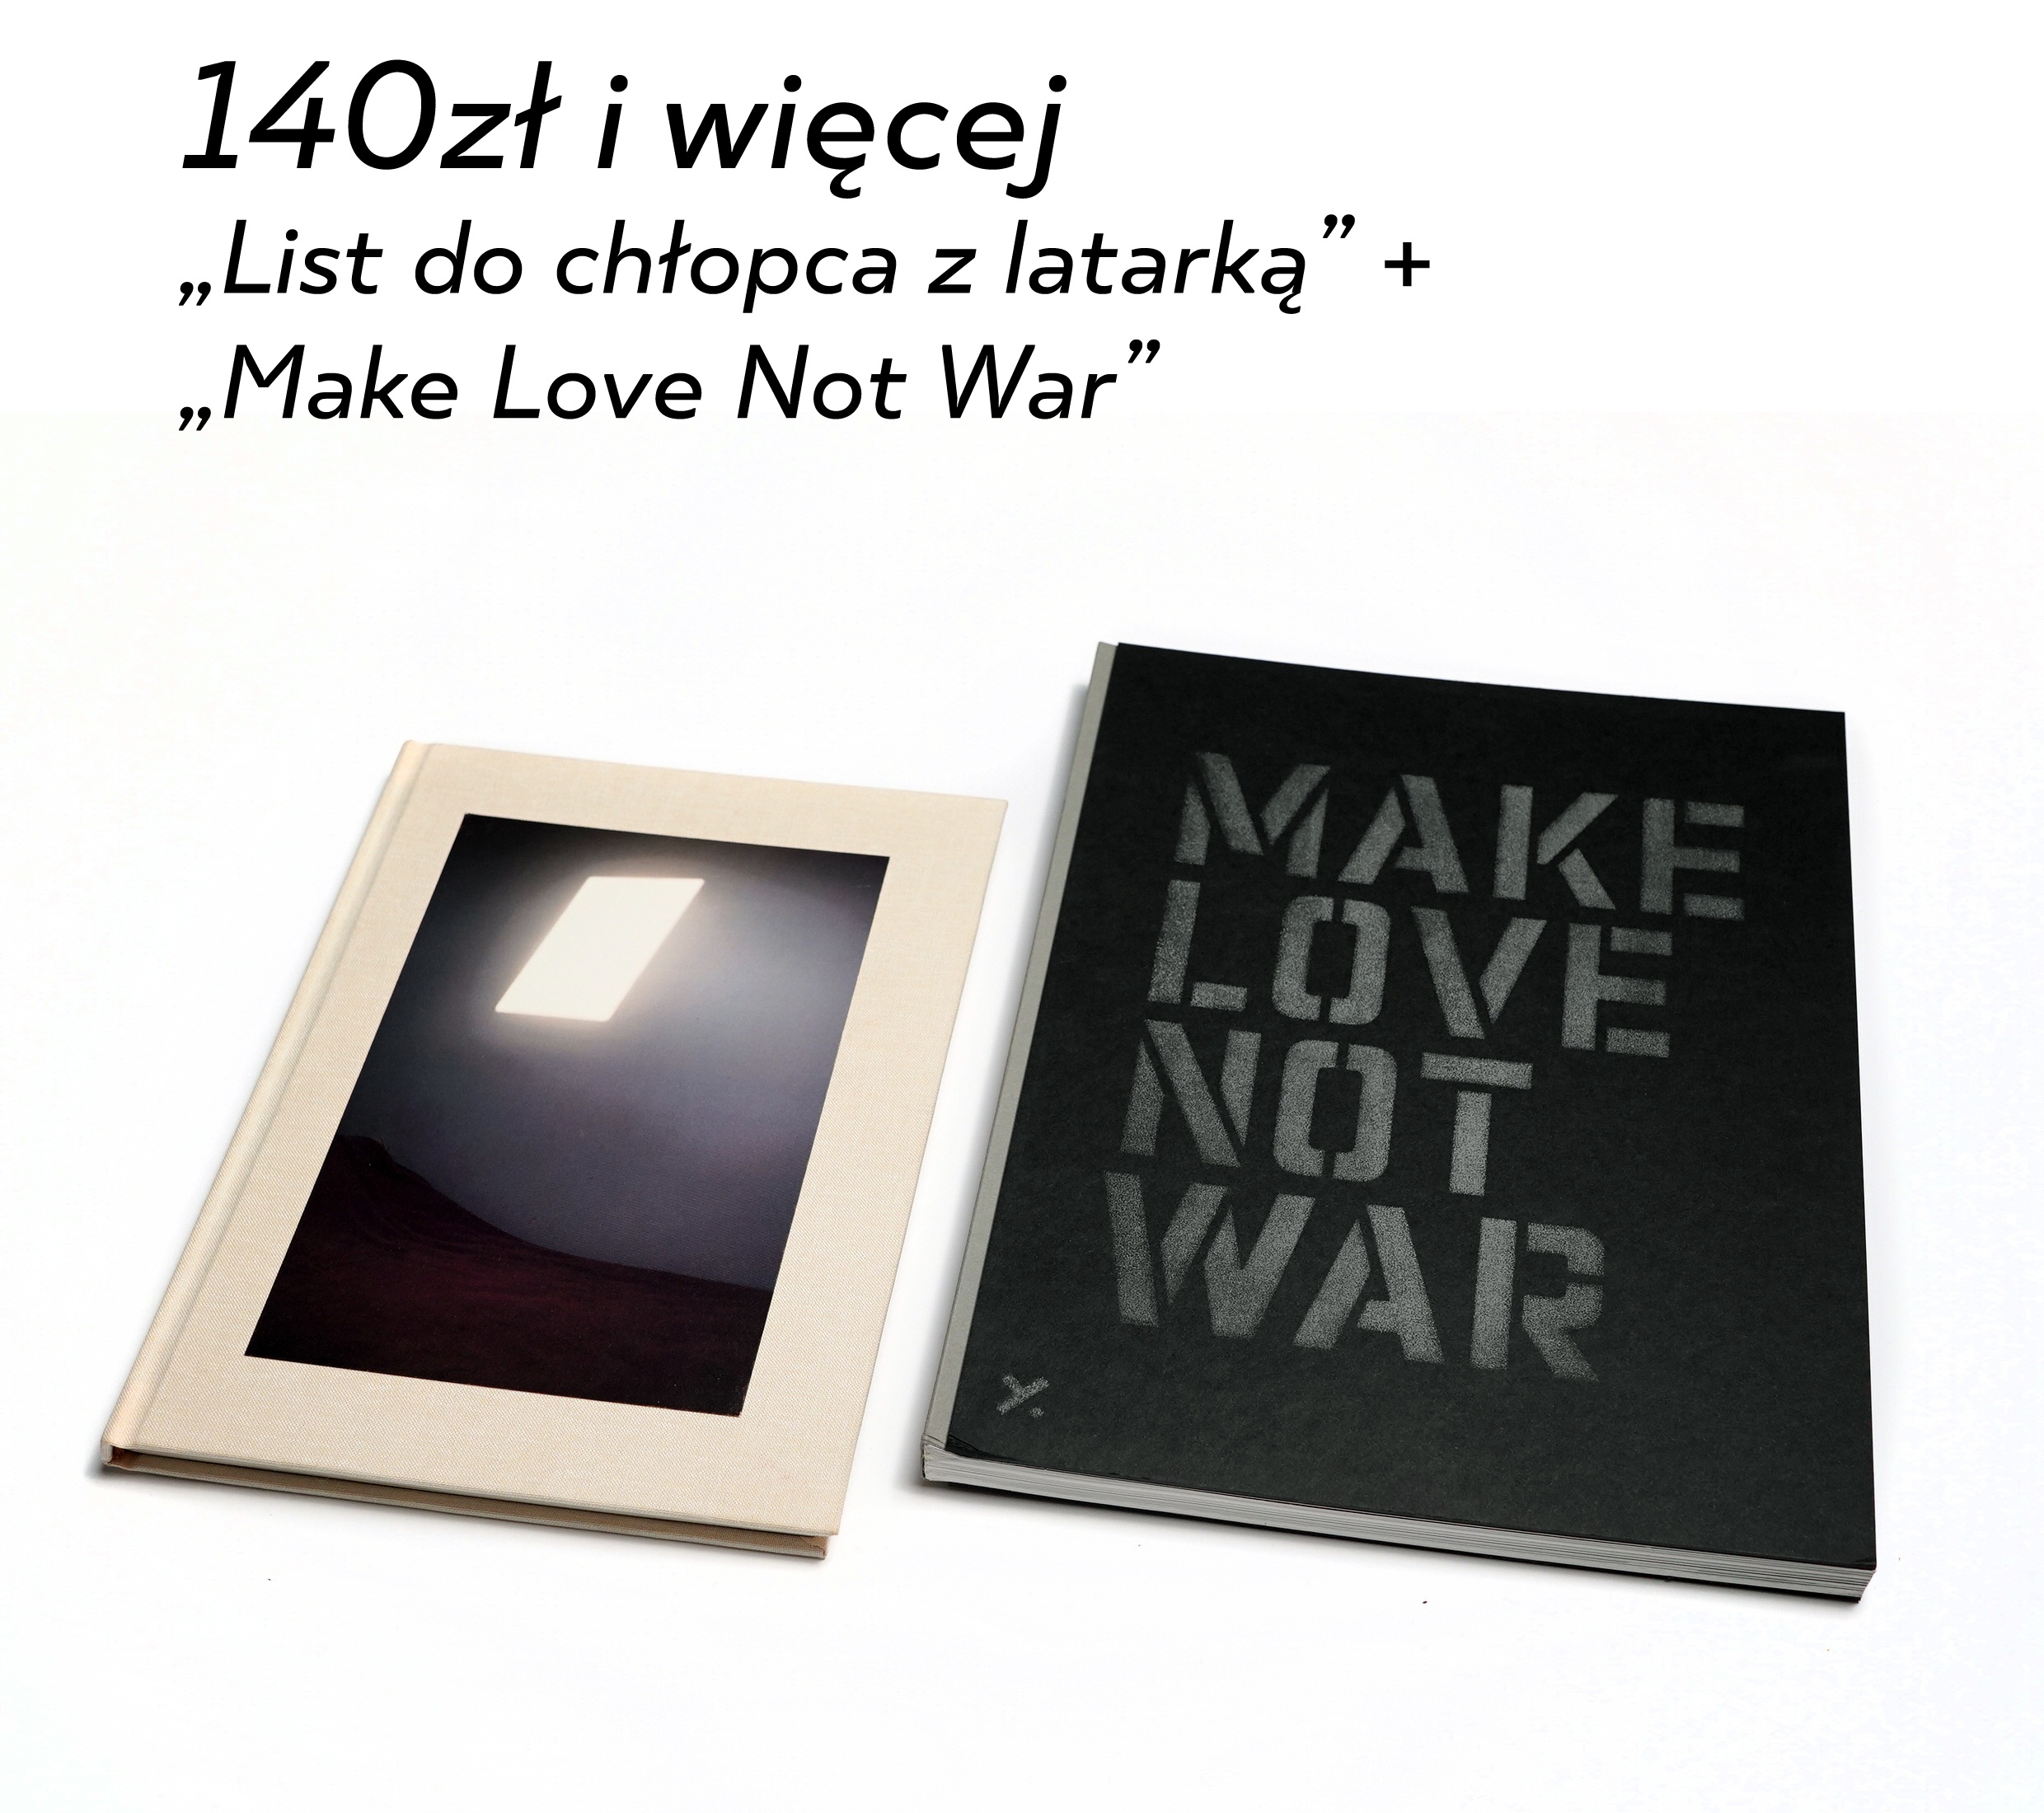 "'List do chłopca z latarką"" + ""Make Love Not War"""